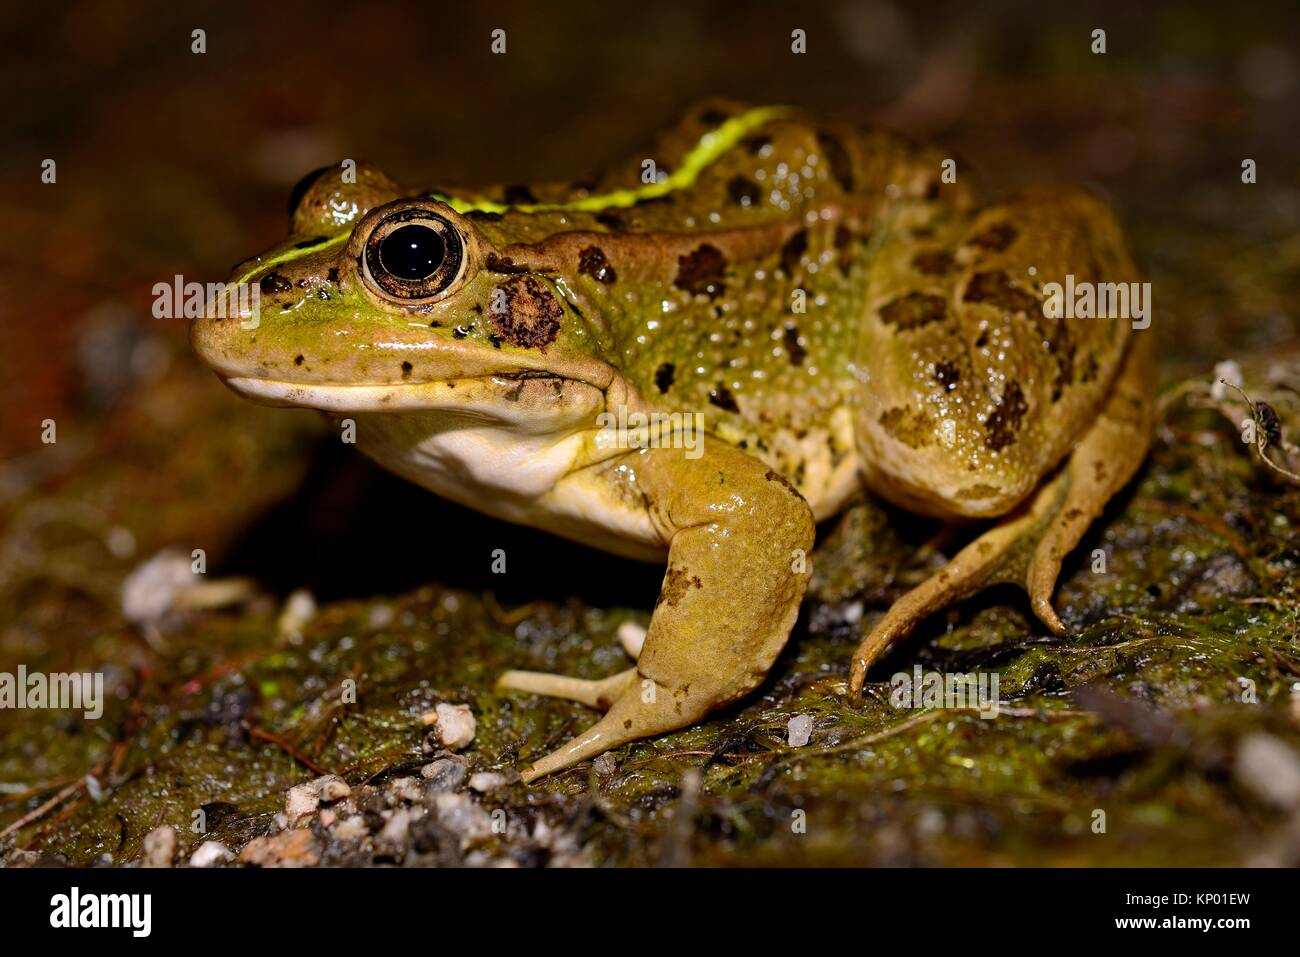 Common frog (Pelophylax perezi) in the edge of a pond in Bustarviejo, Madrid, Spain. - Stock Image